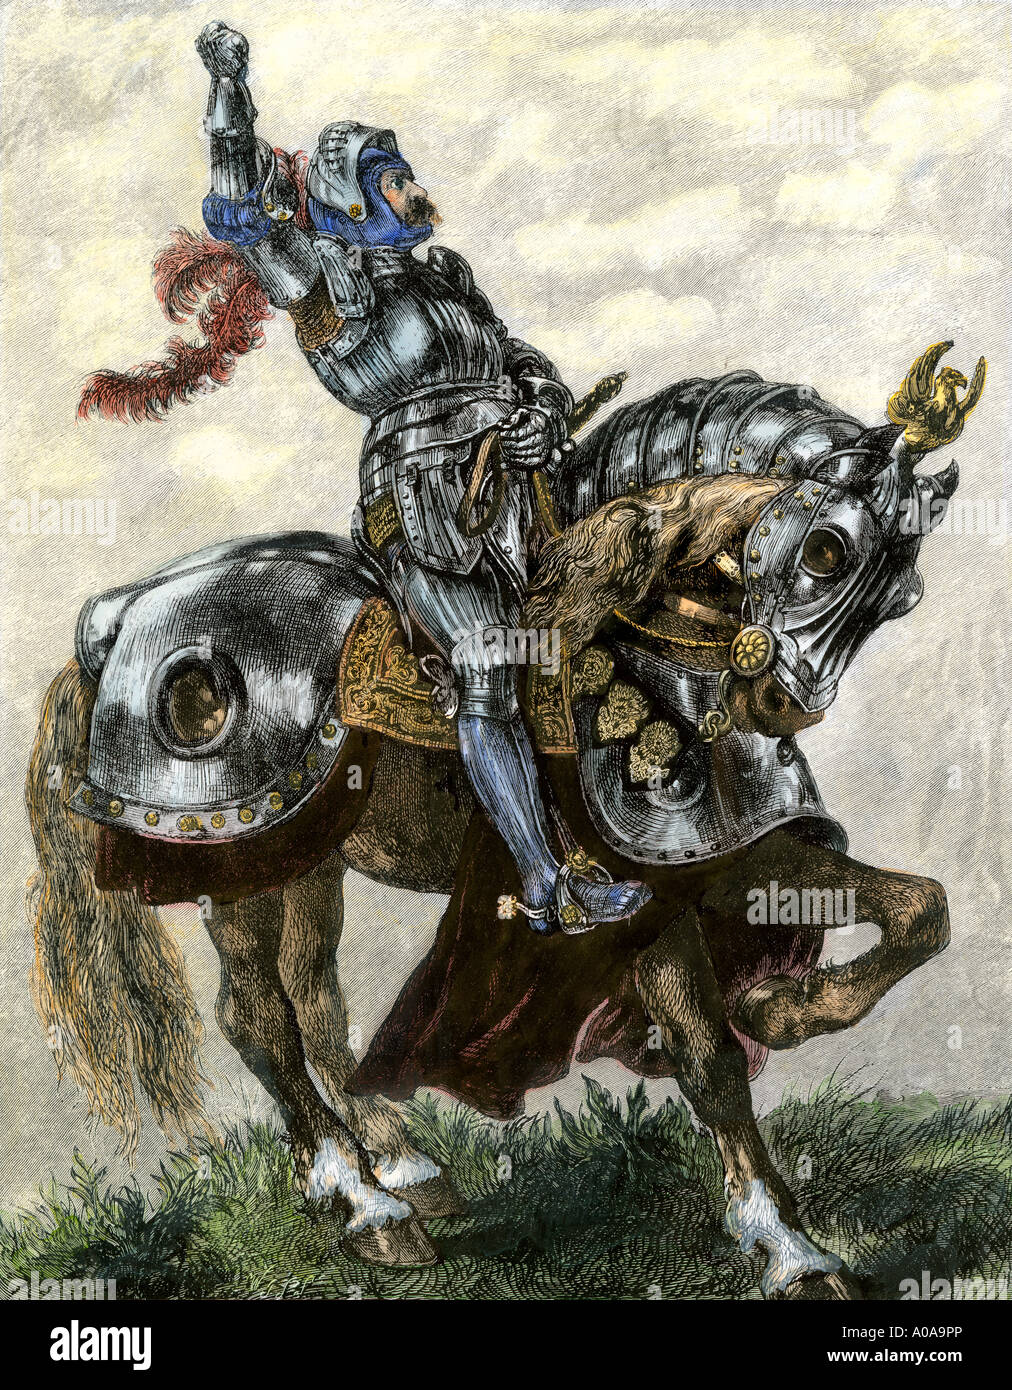 Knight shaking his fist defiantly. Hand-colored woodcut of a John Gilbert painting - Stock Image